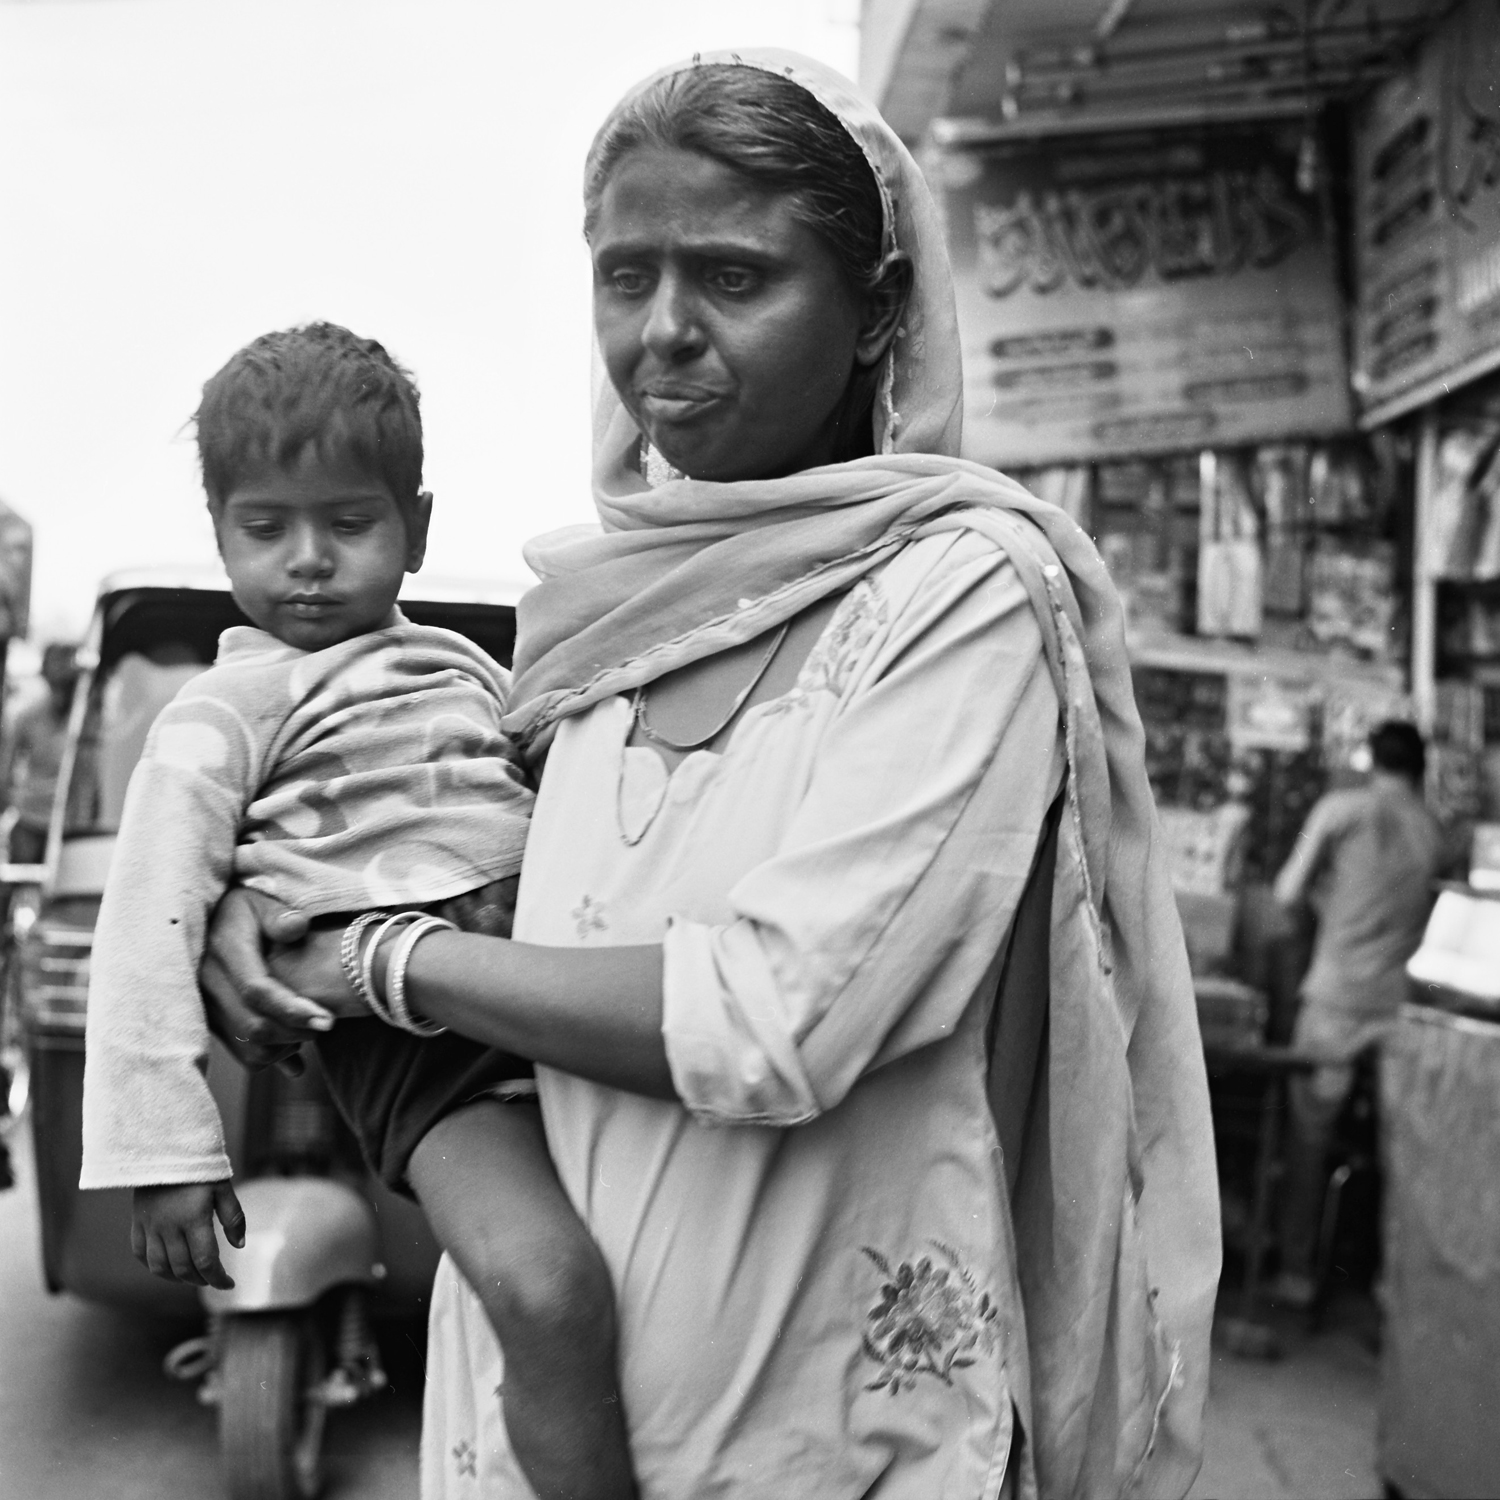 chandni-chowk-mother-son-old-delhi.jpg